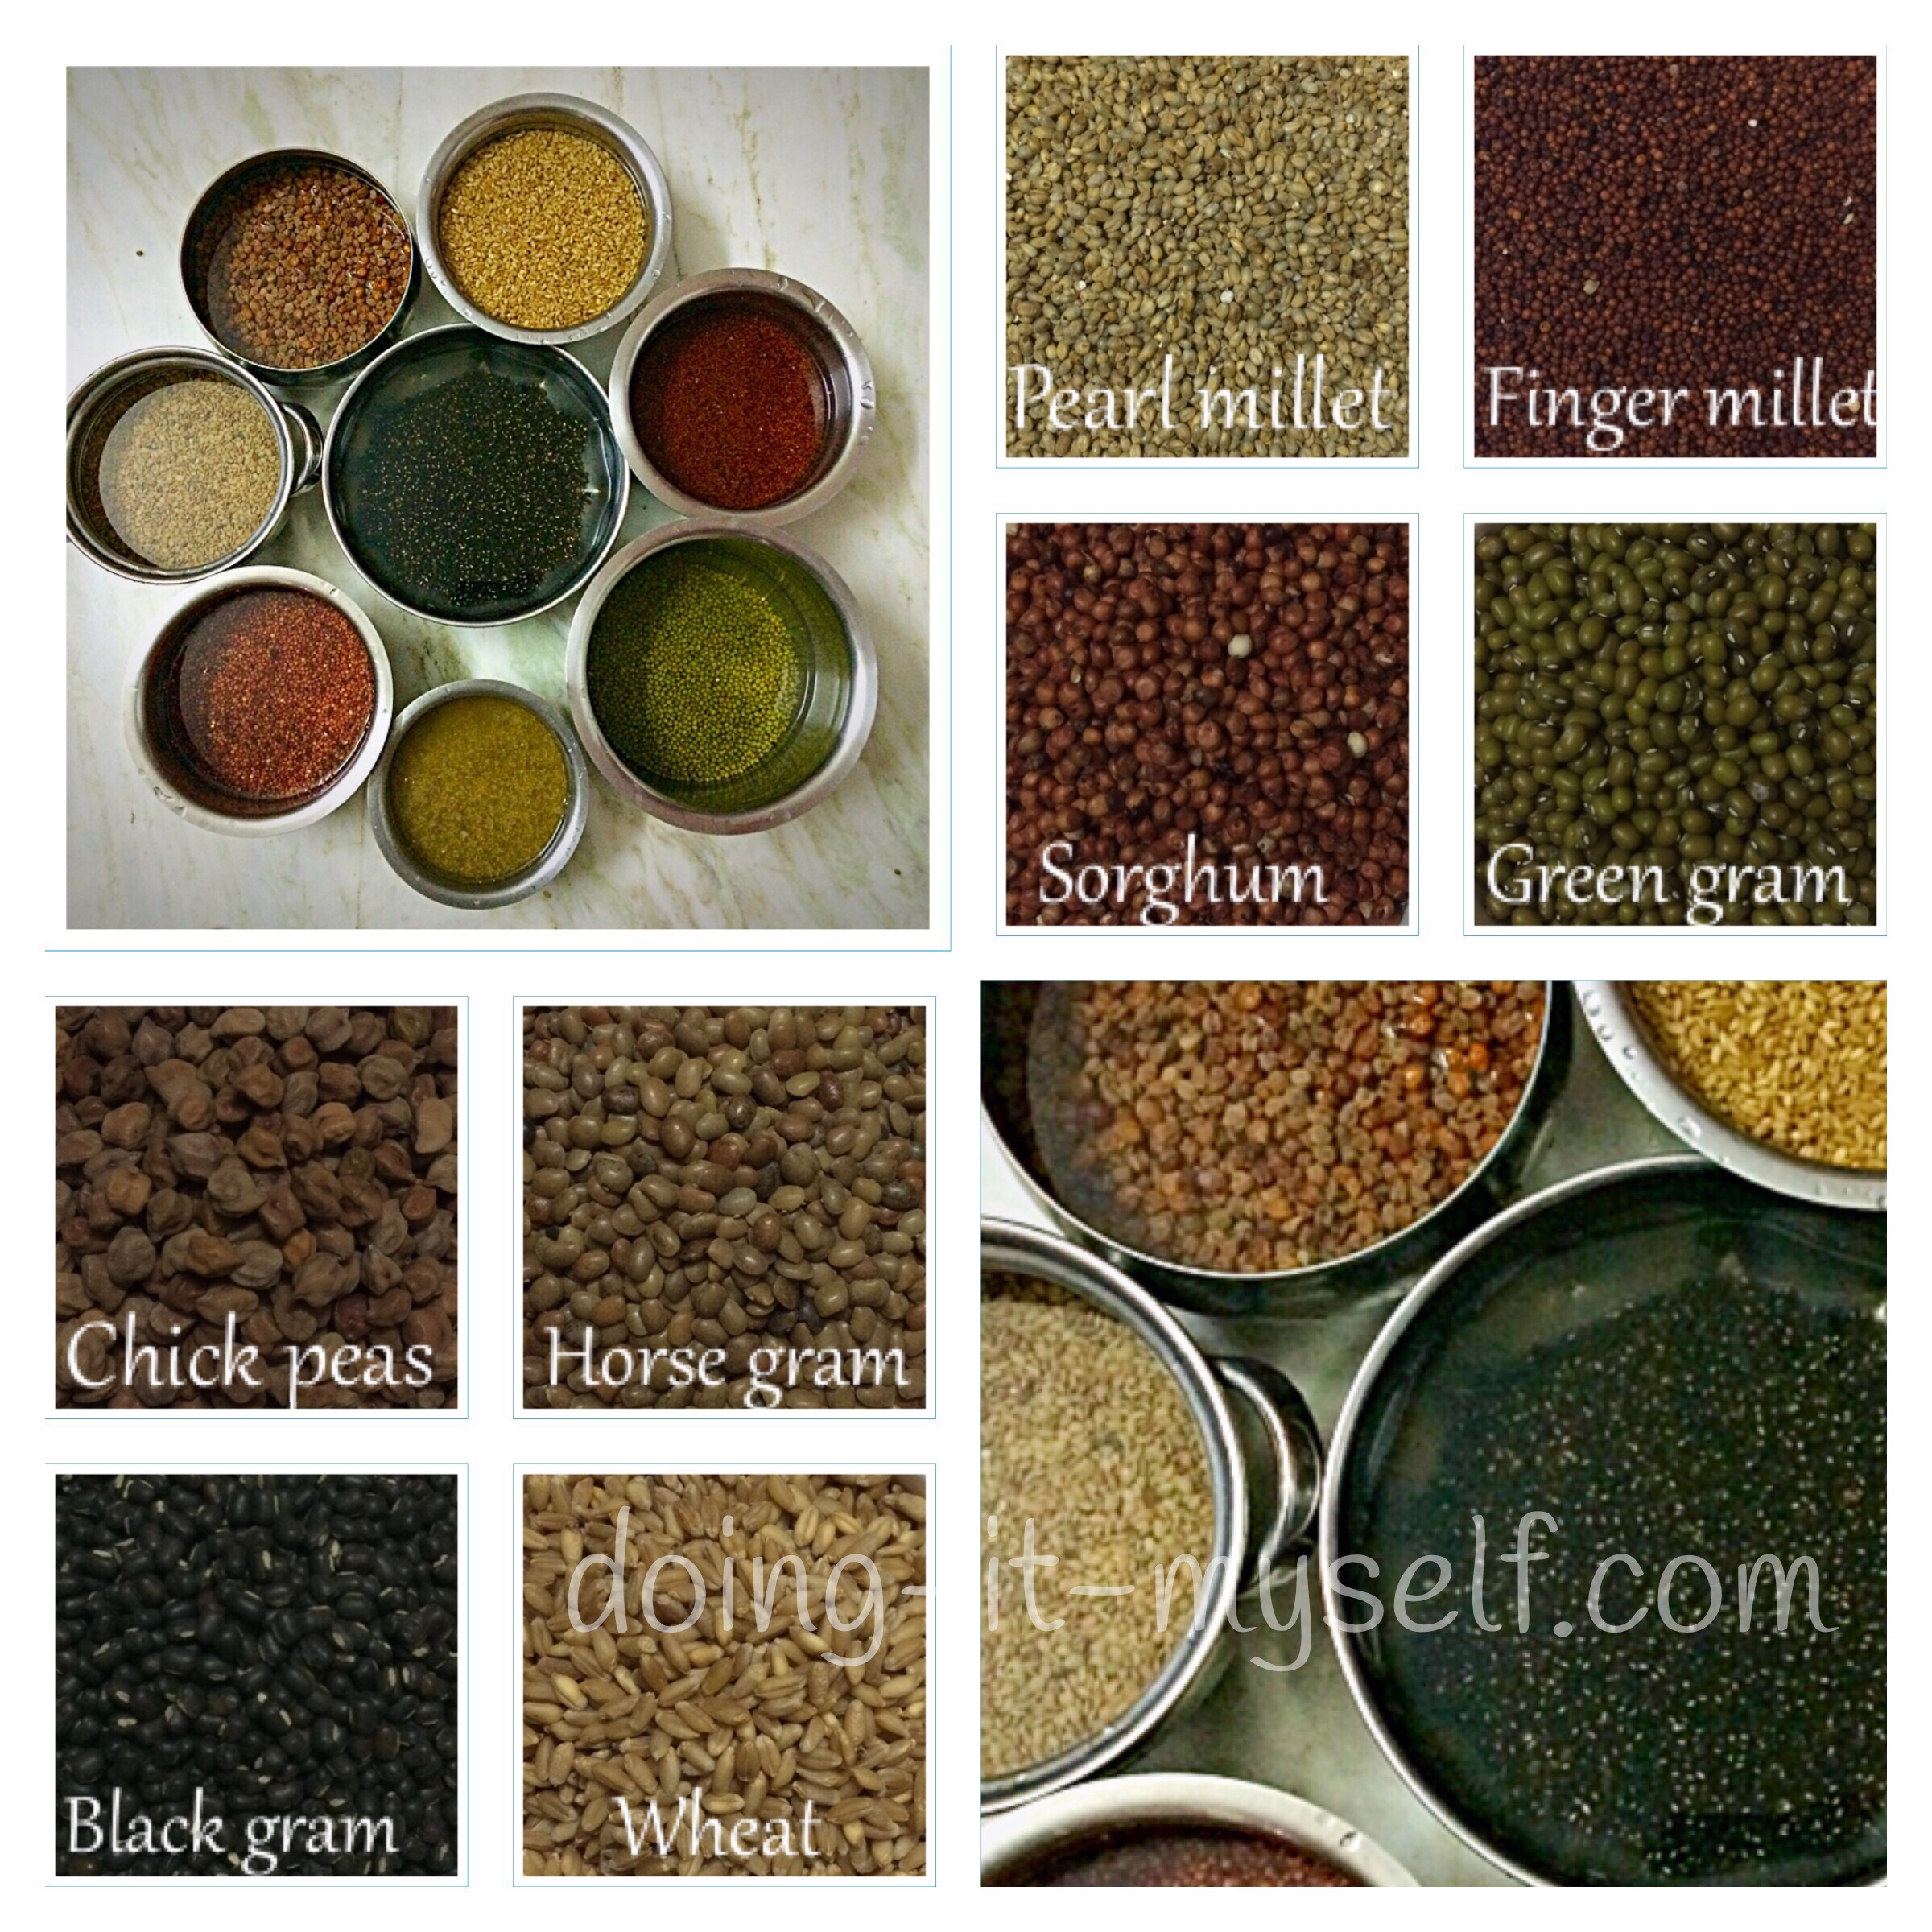 soaking-millets-redrice-pulses